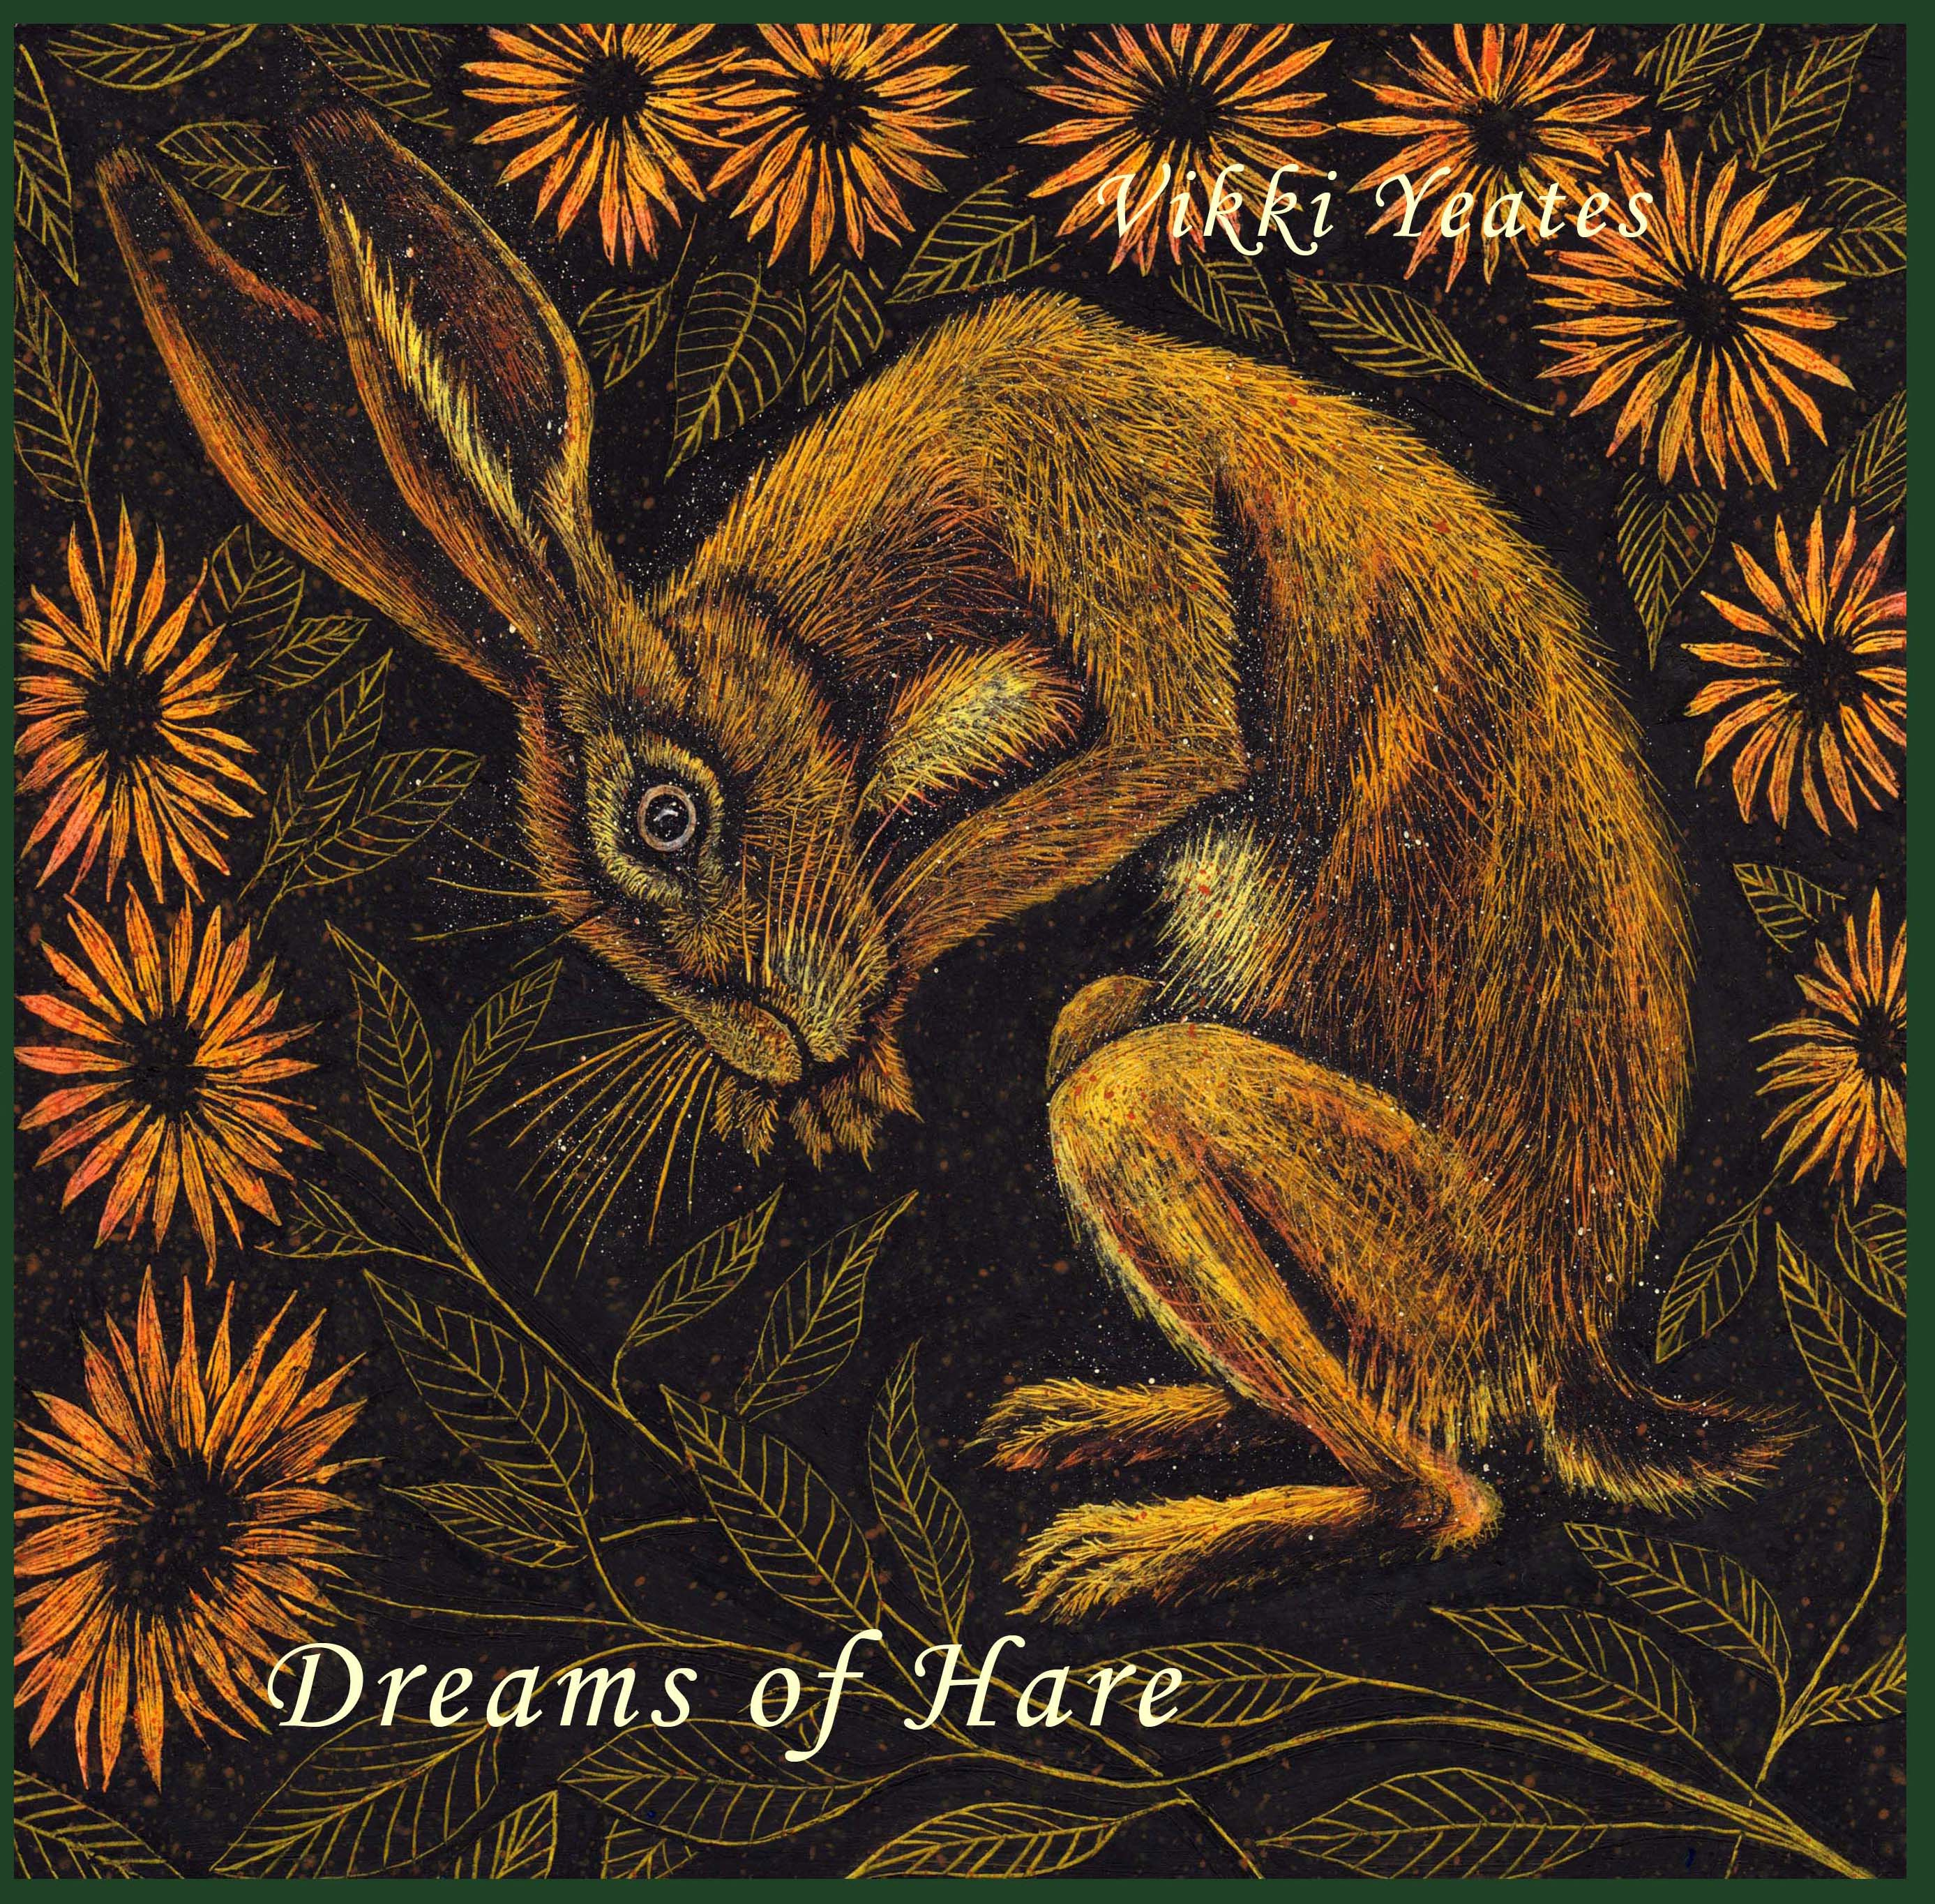 My new hardcover book - 'Dreams of Hare'